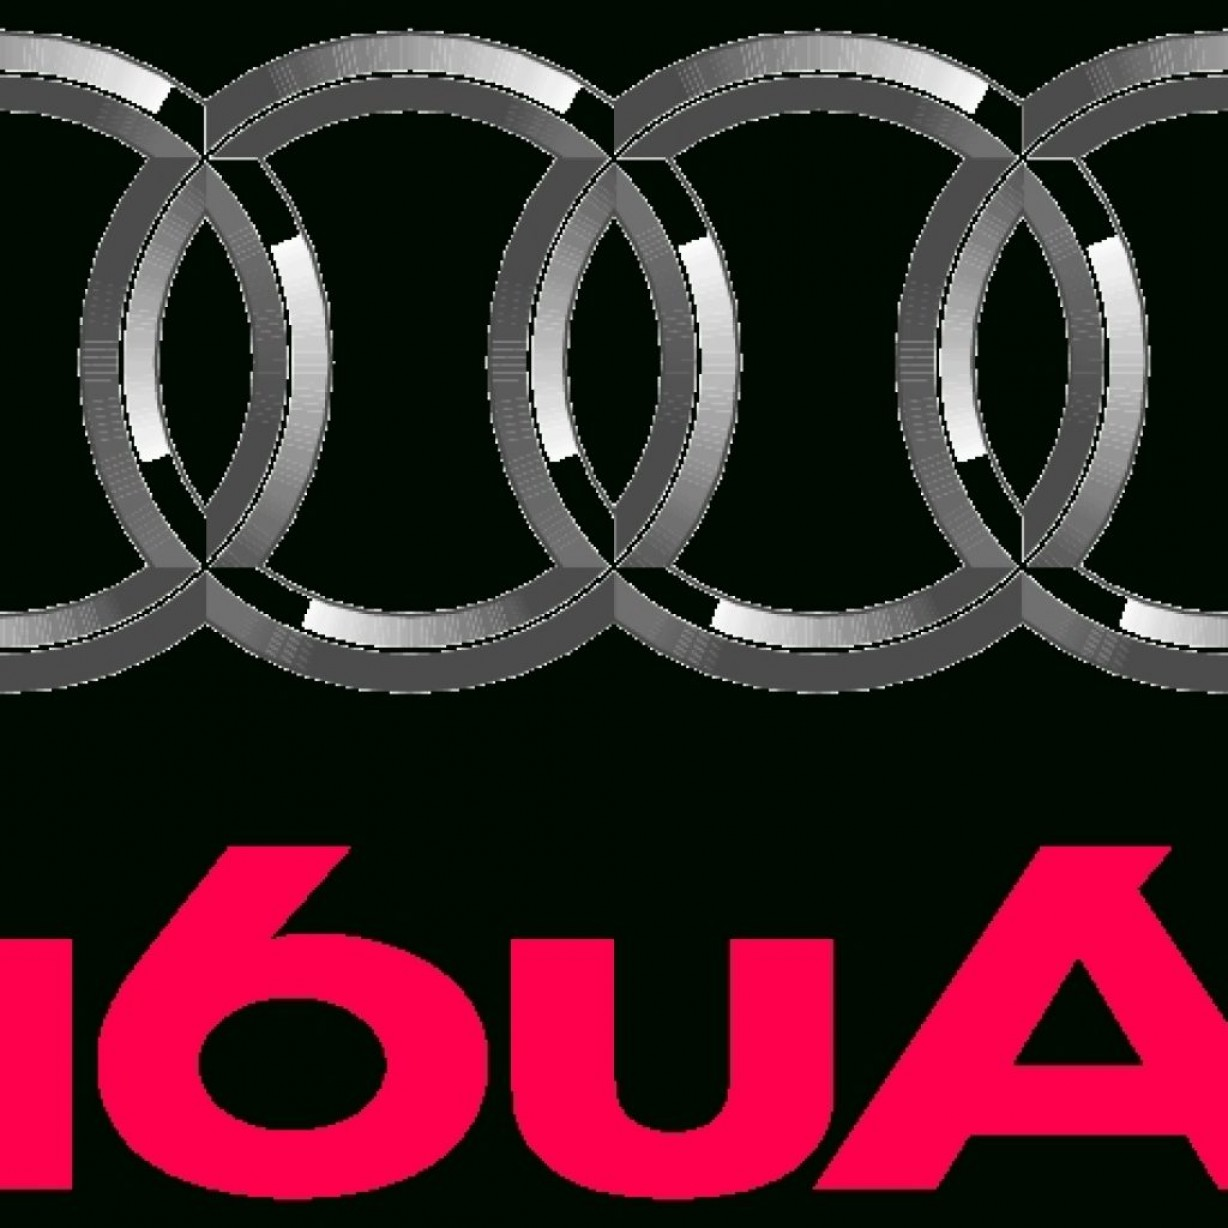 1228x1228 Audi Logo Free Logos Vector Within Audi Logo Vector Lazttweet